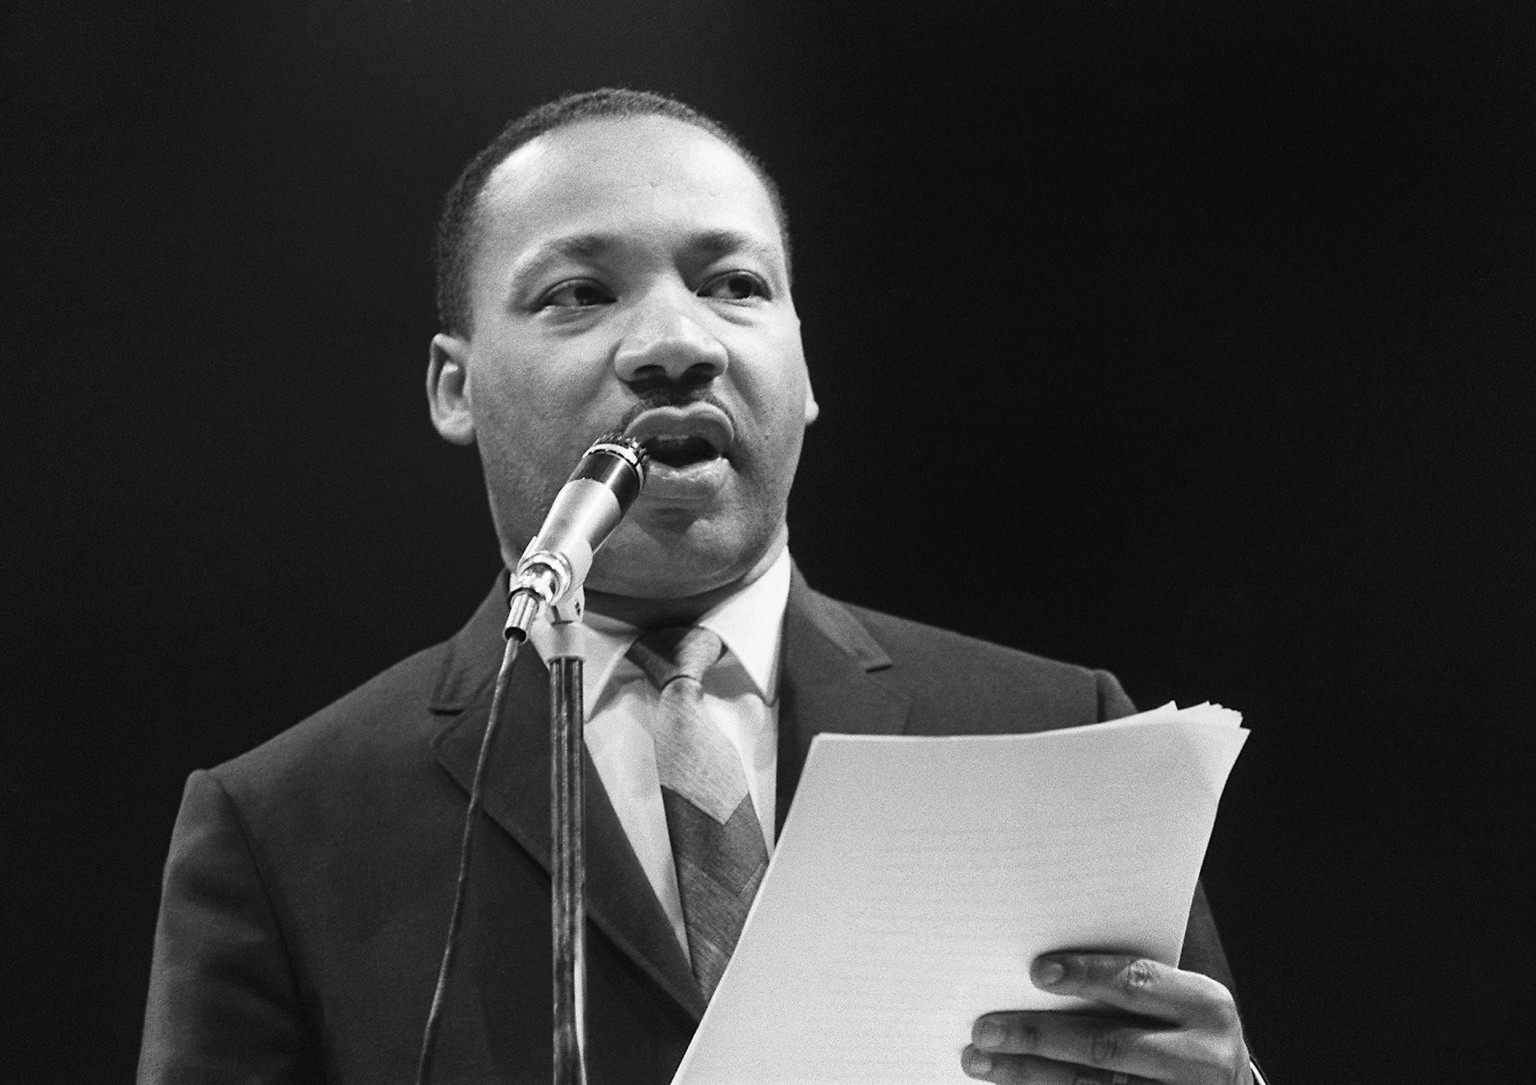 i have a dream speech s social critique sometimes lost in i have a dream speech s social critique sometimes lost in celebrations the huffington post